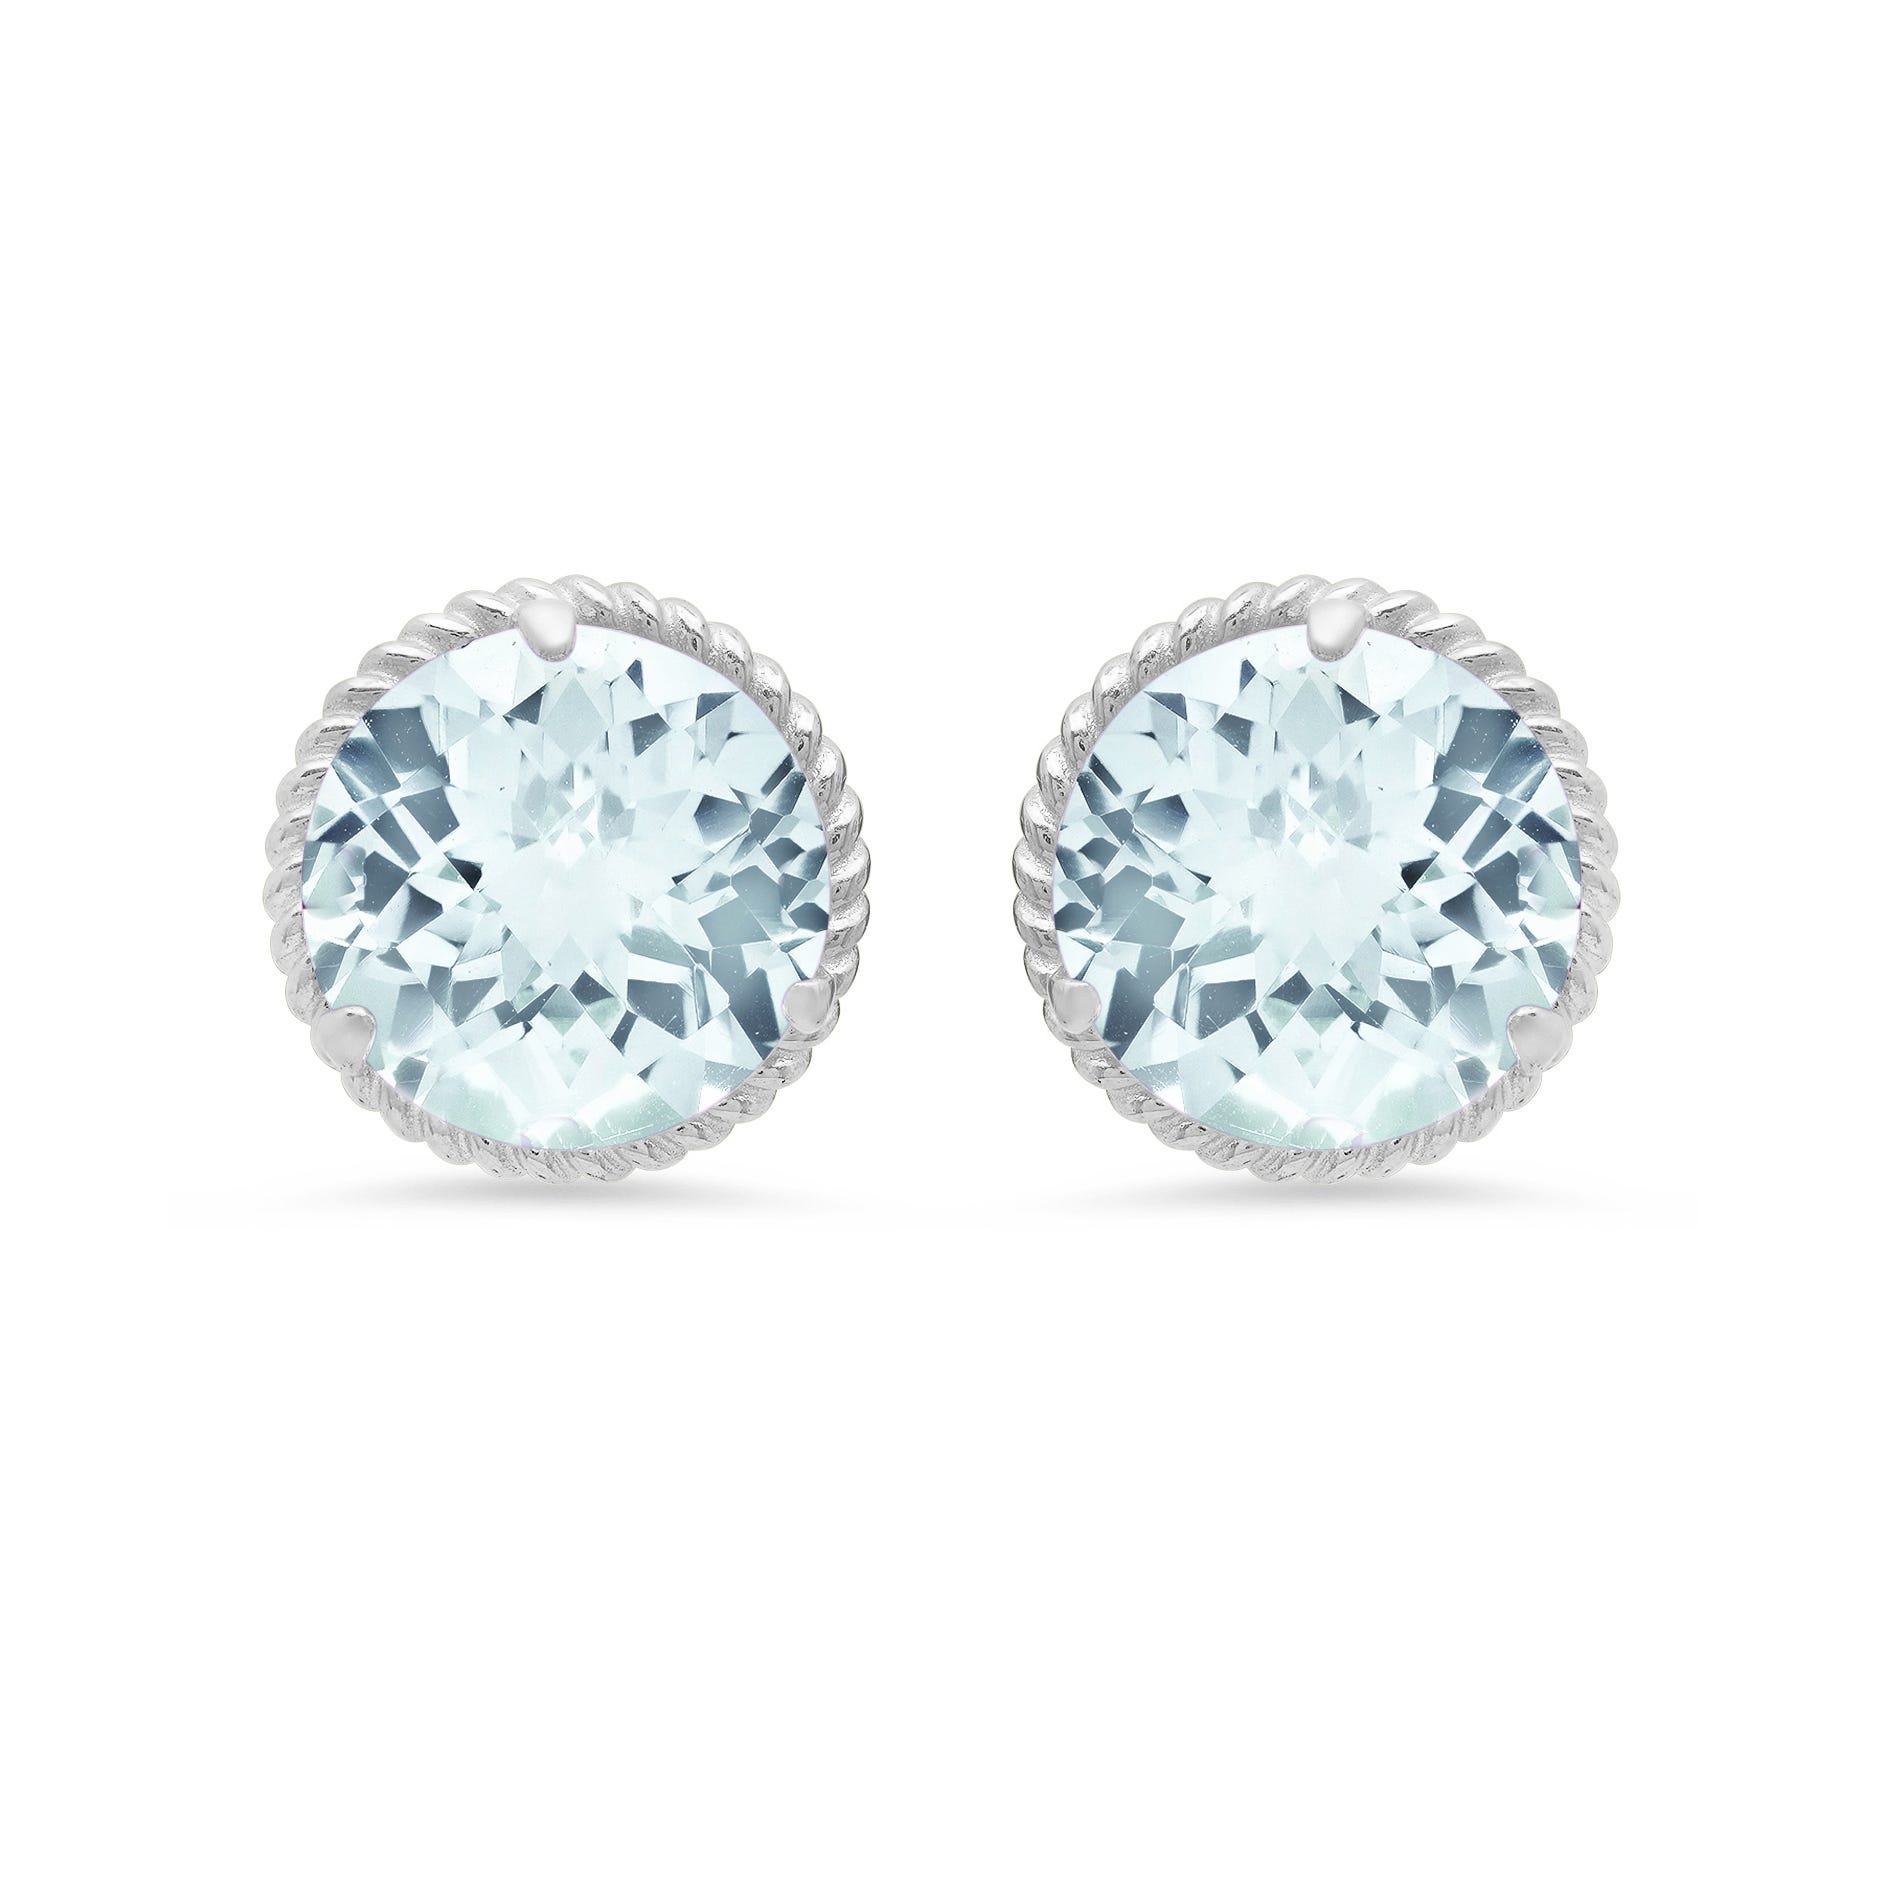 Aquamarine Roped Halo Stud Earrings in 14k White Gold